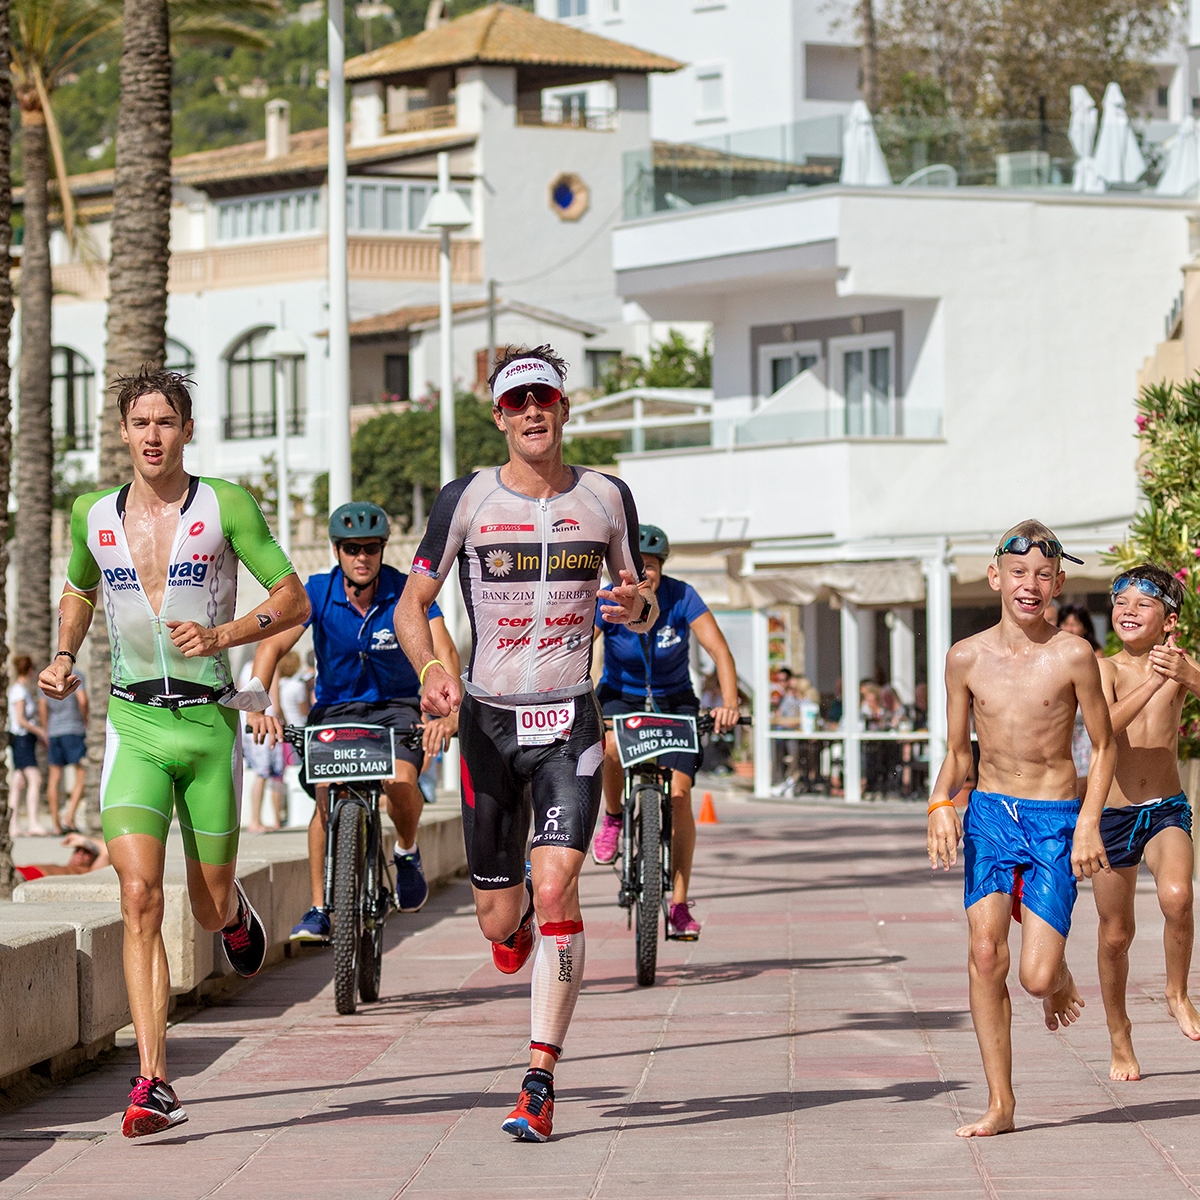 Run - Challenge Peguera Mallorca race magazine 2020 triathlon